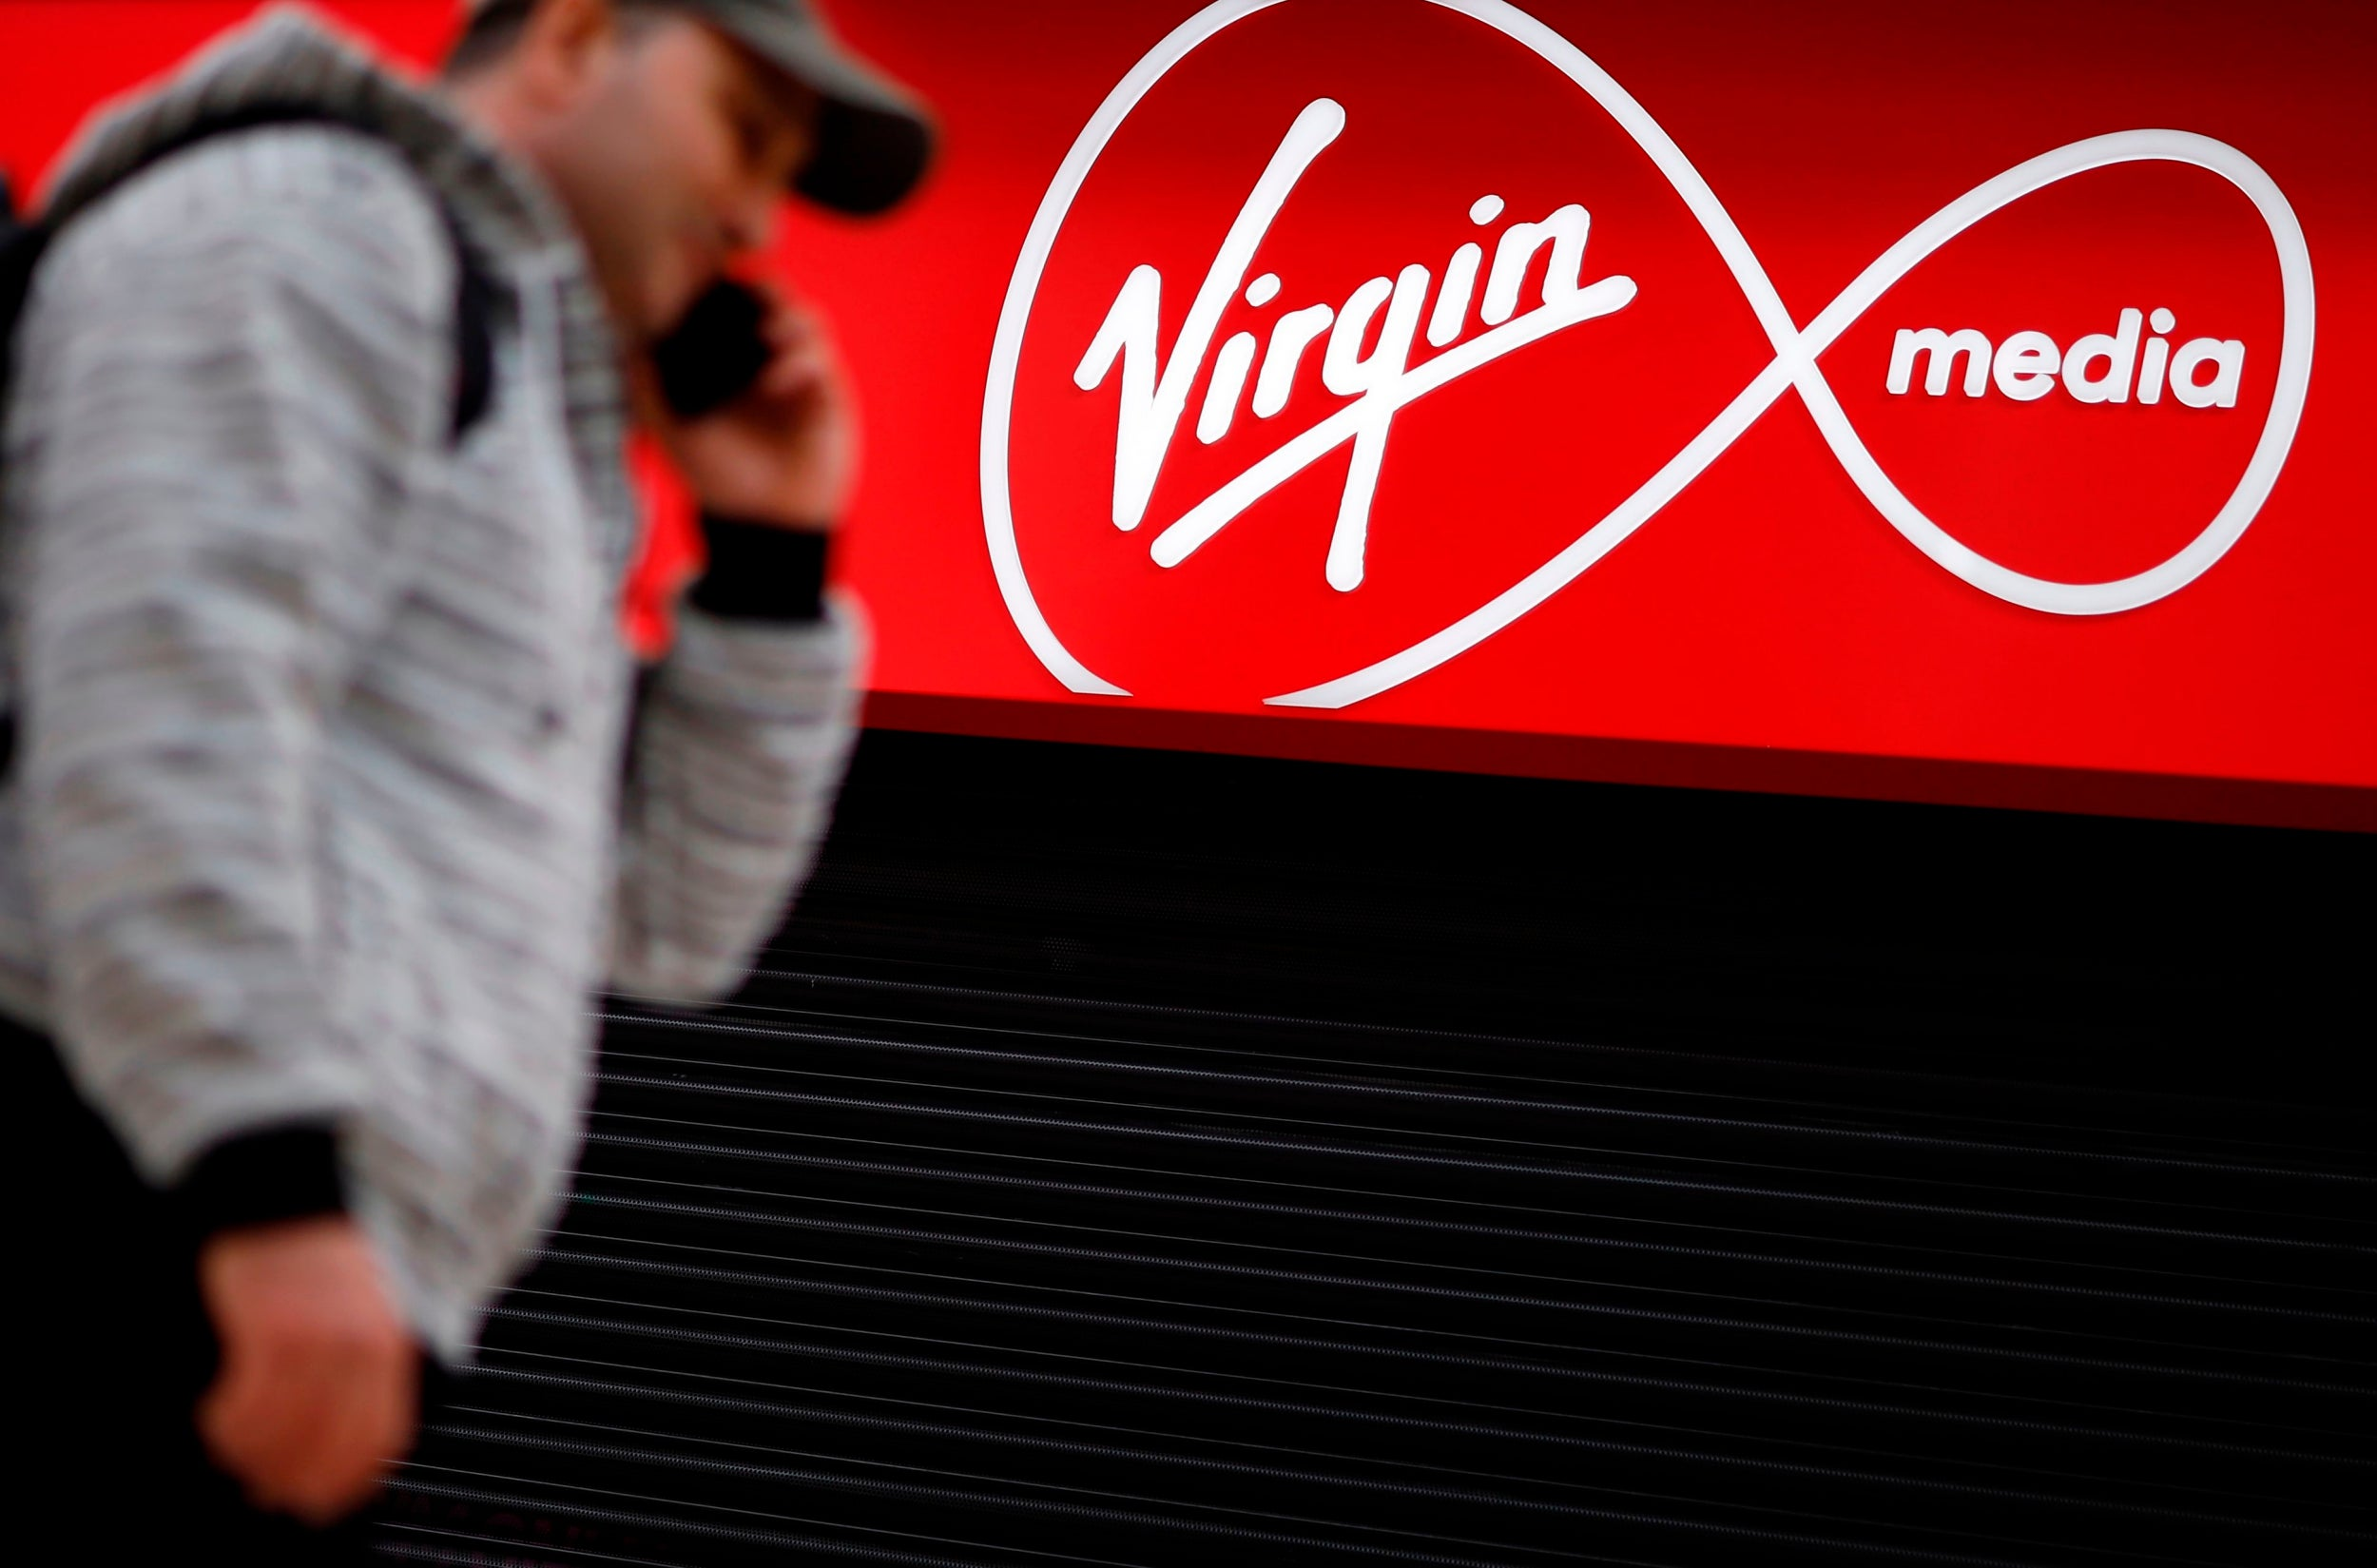 Virgin internet has stopped working, users say